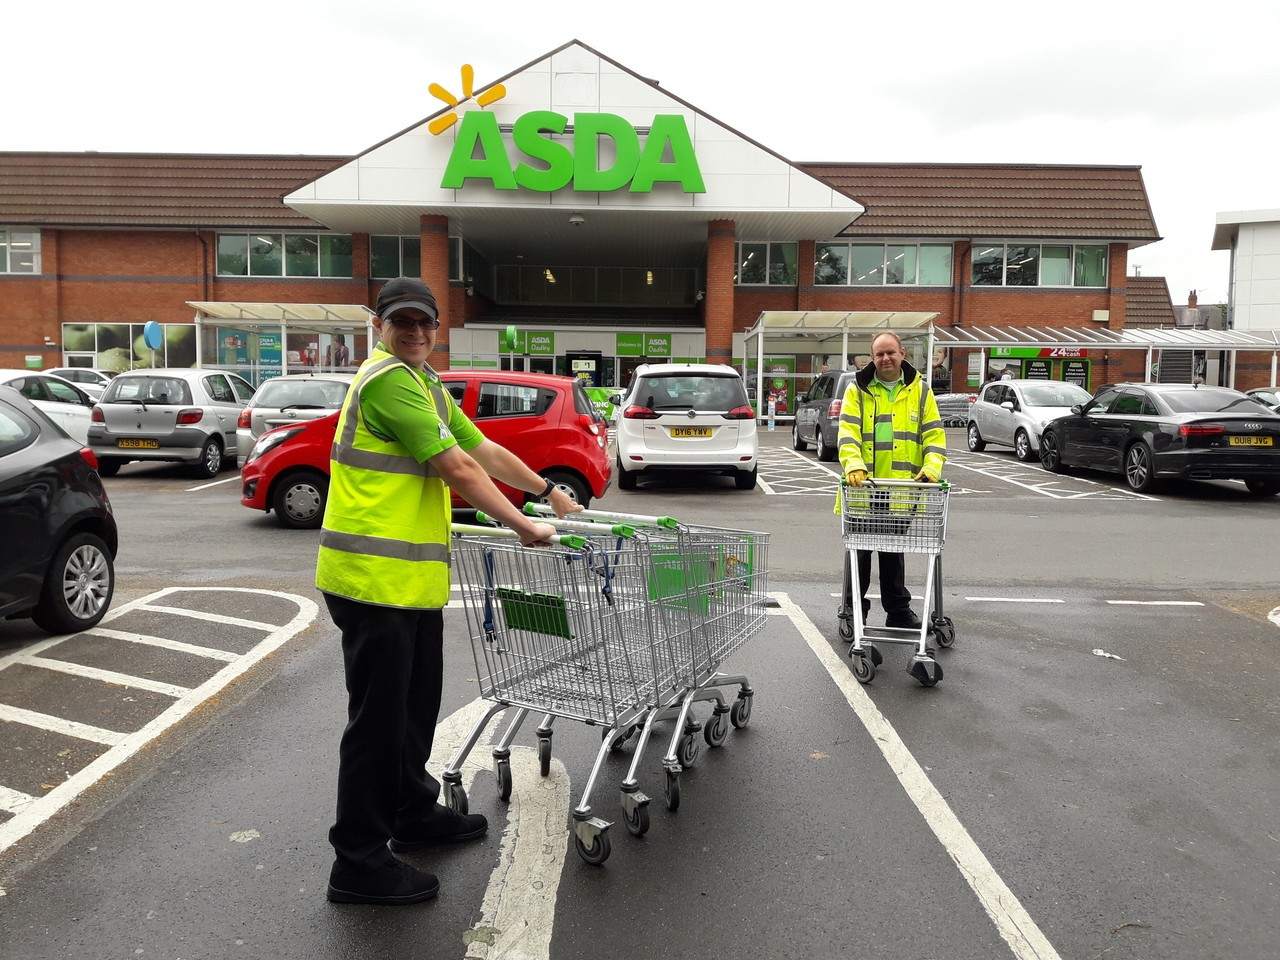 Our porters doing a great job | Asda Oadby